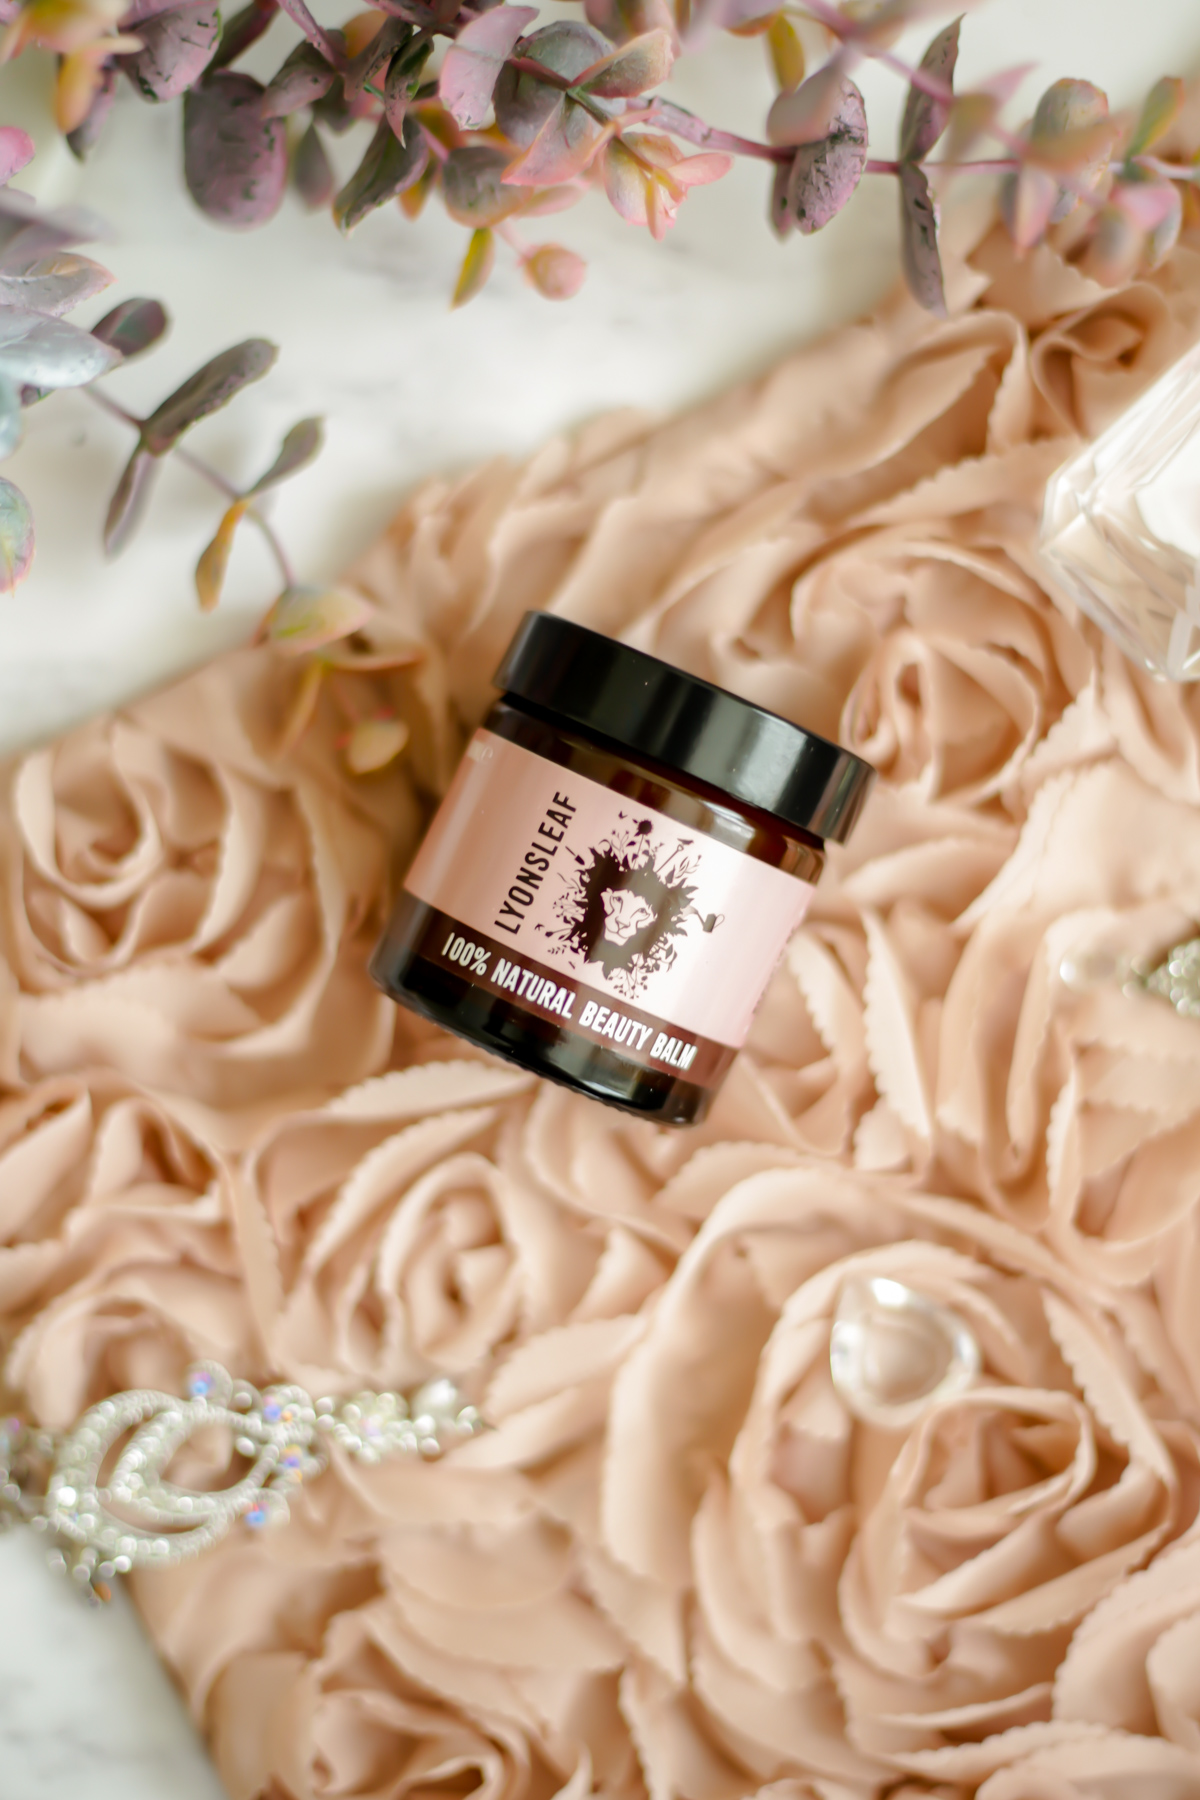 Trying Some Natural Skincare from Lyonsleaf- feat Lyonsleaf Beauty Balm styled on pink floral cushion_